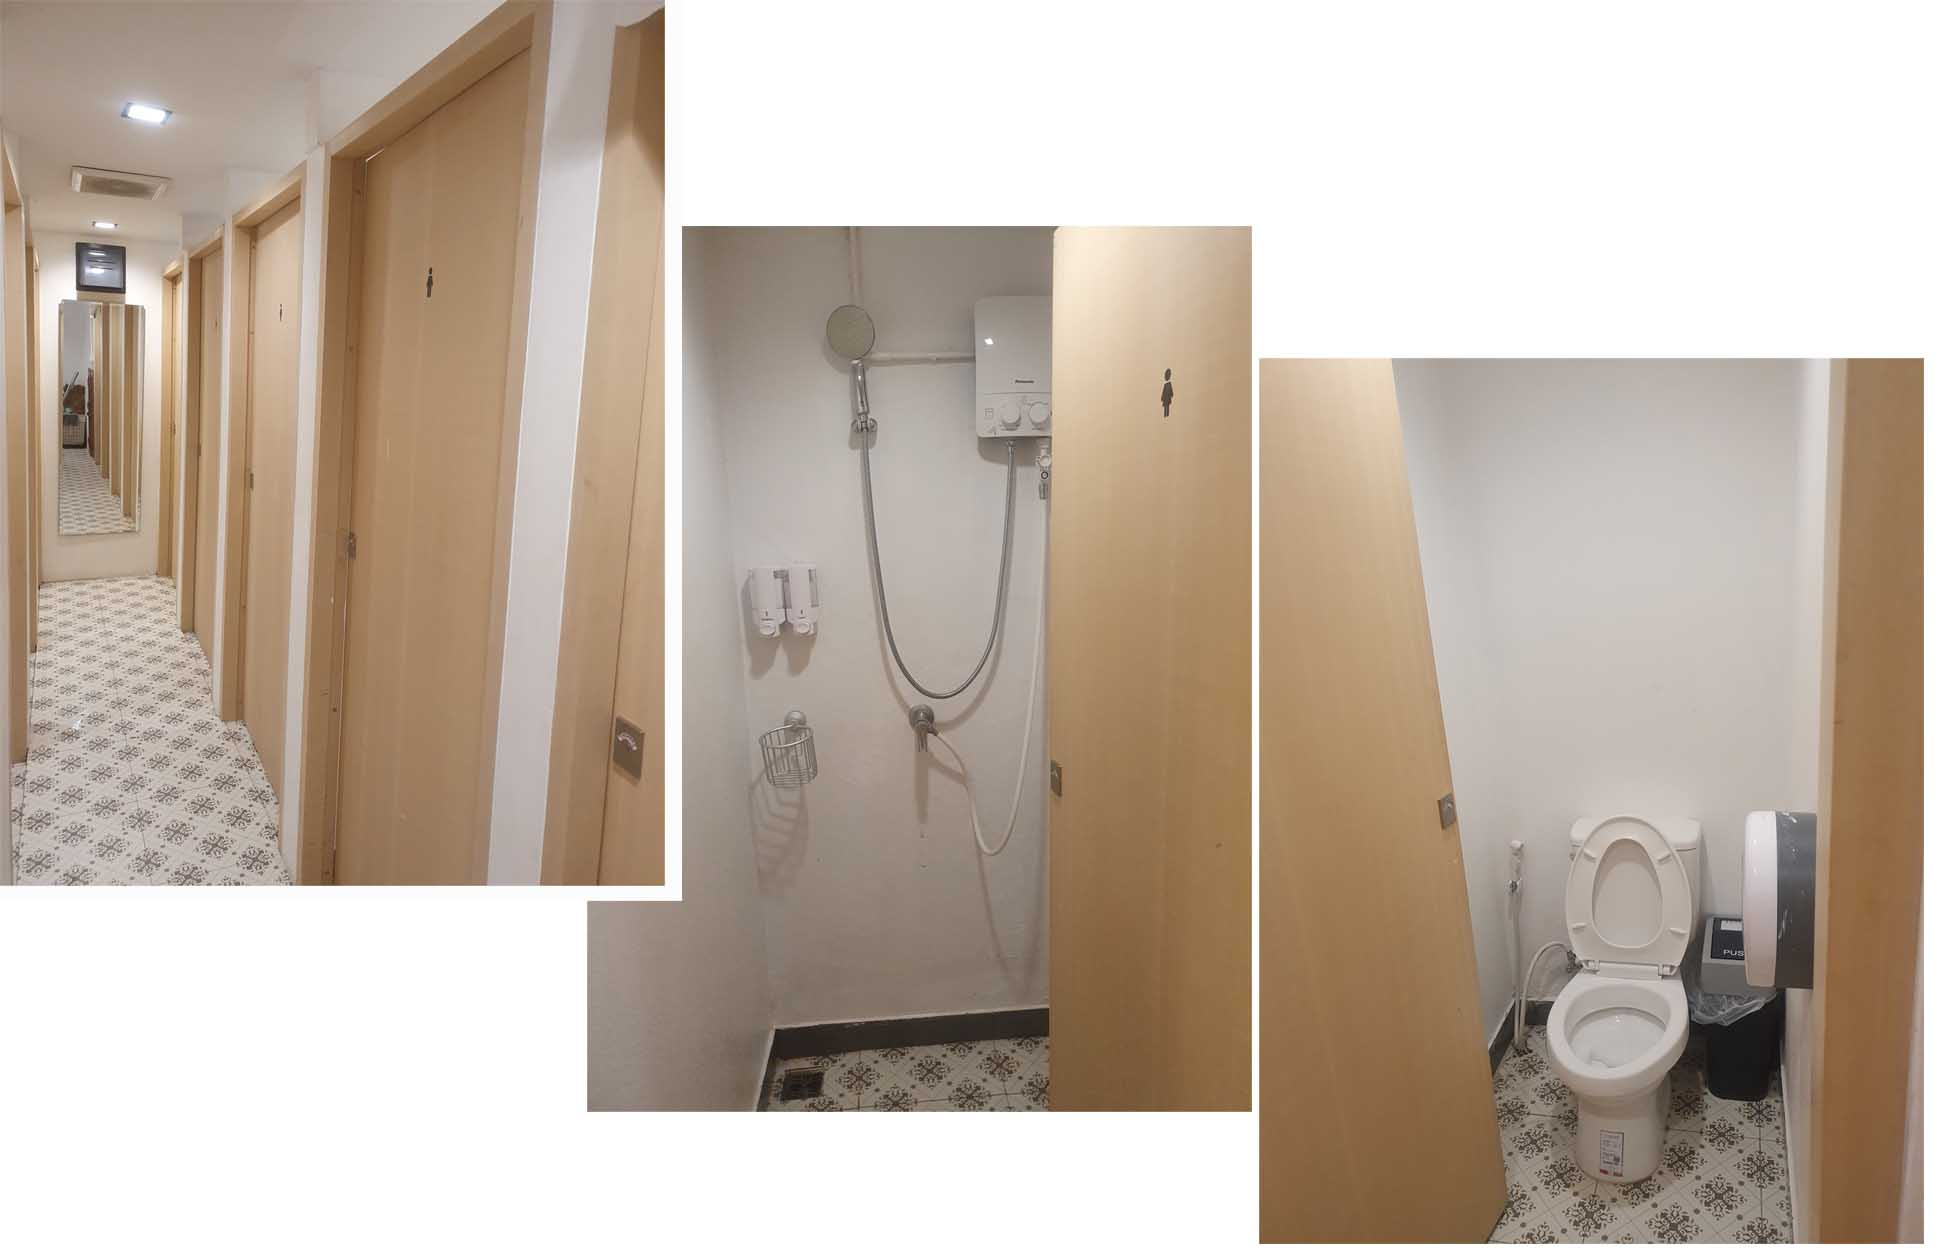 Shared shower rooms and toilets